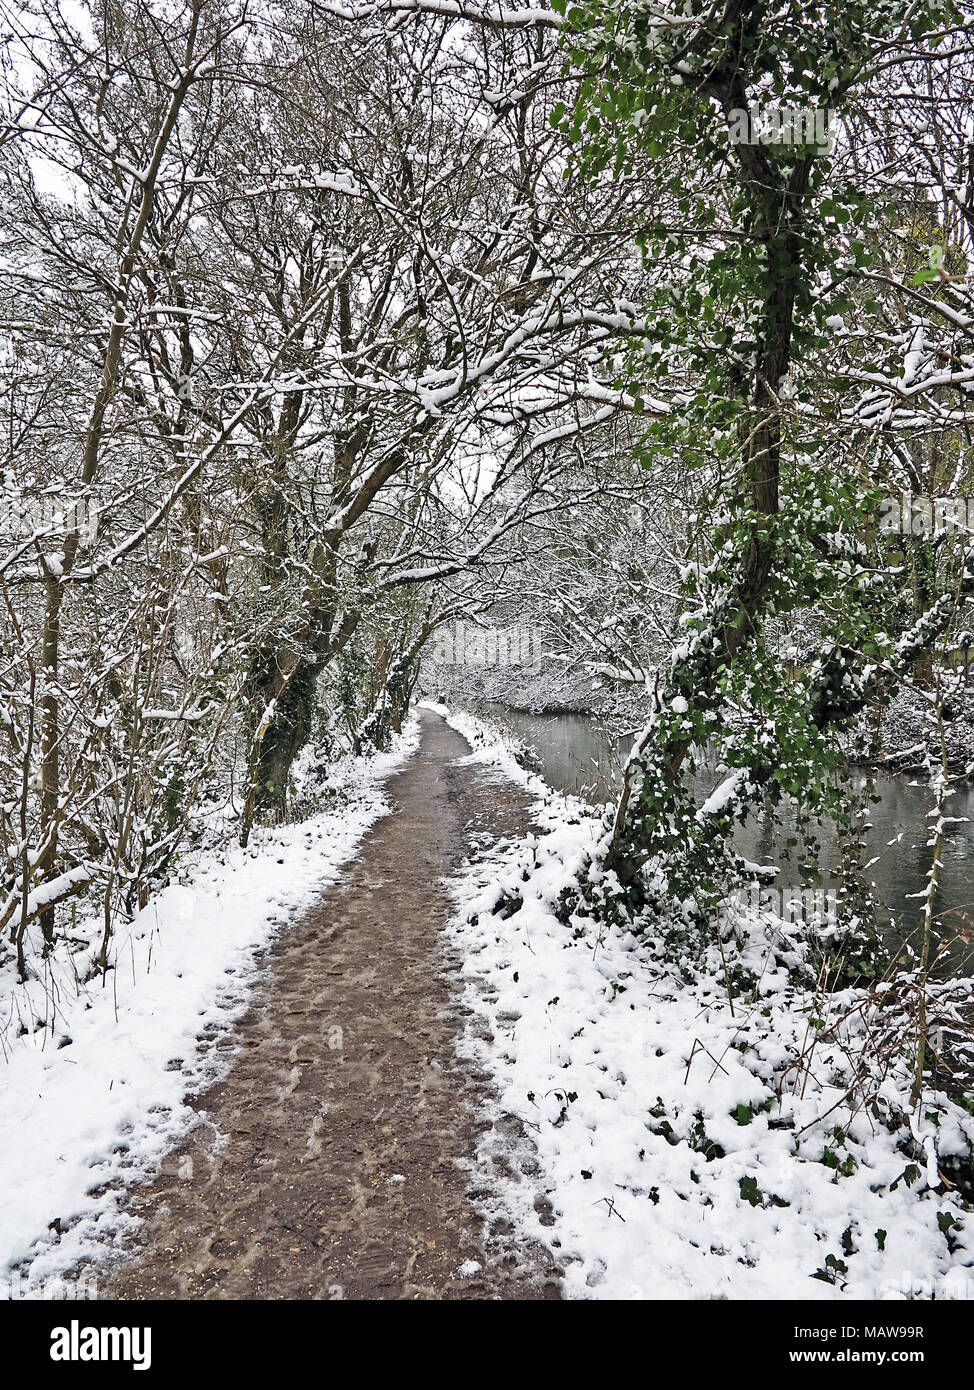 River Itchen Navigation Heritage Trail, after a snowfall, Eastleigh, Hampshire, England. - Stock Image